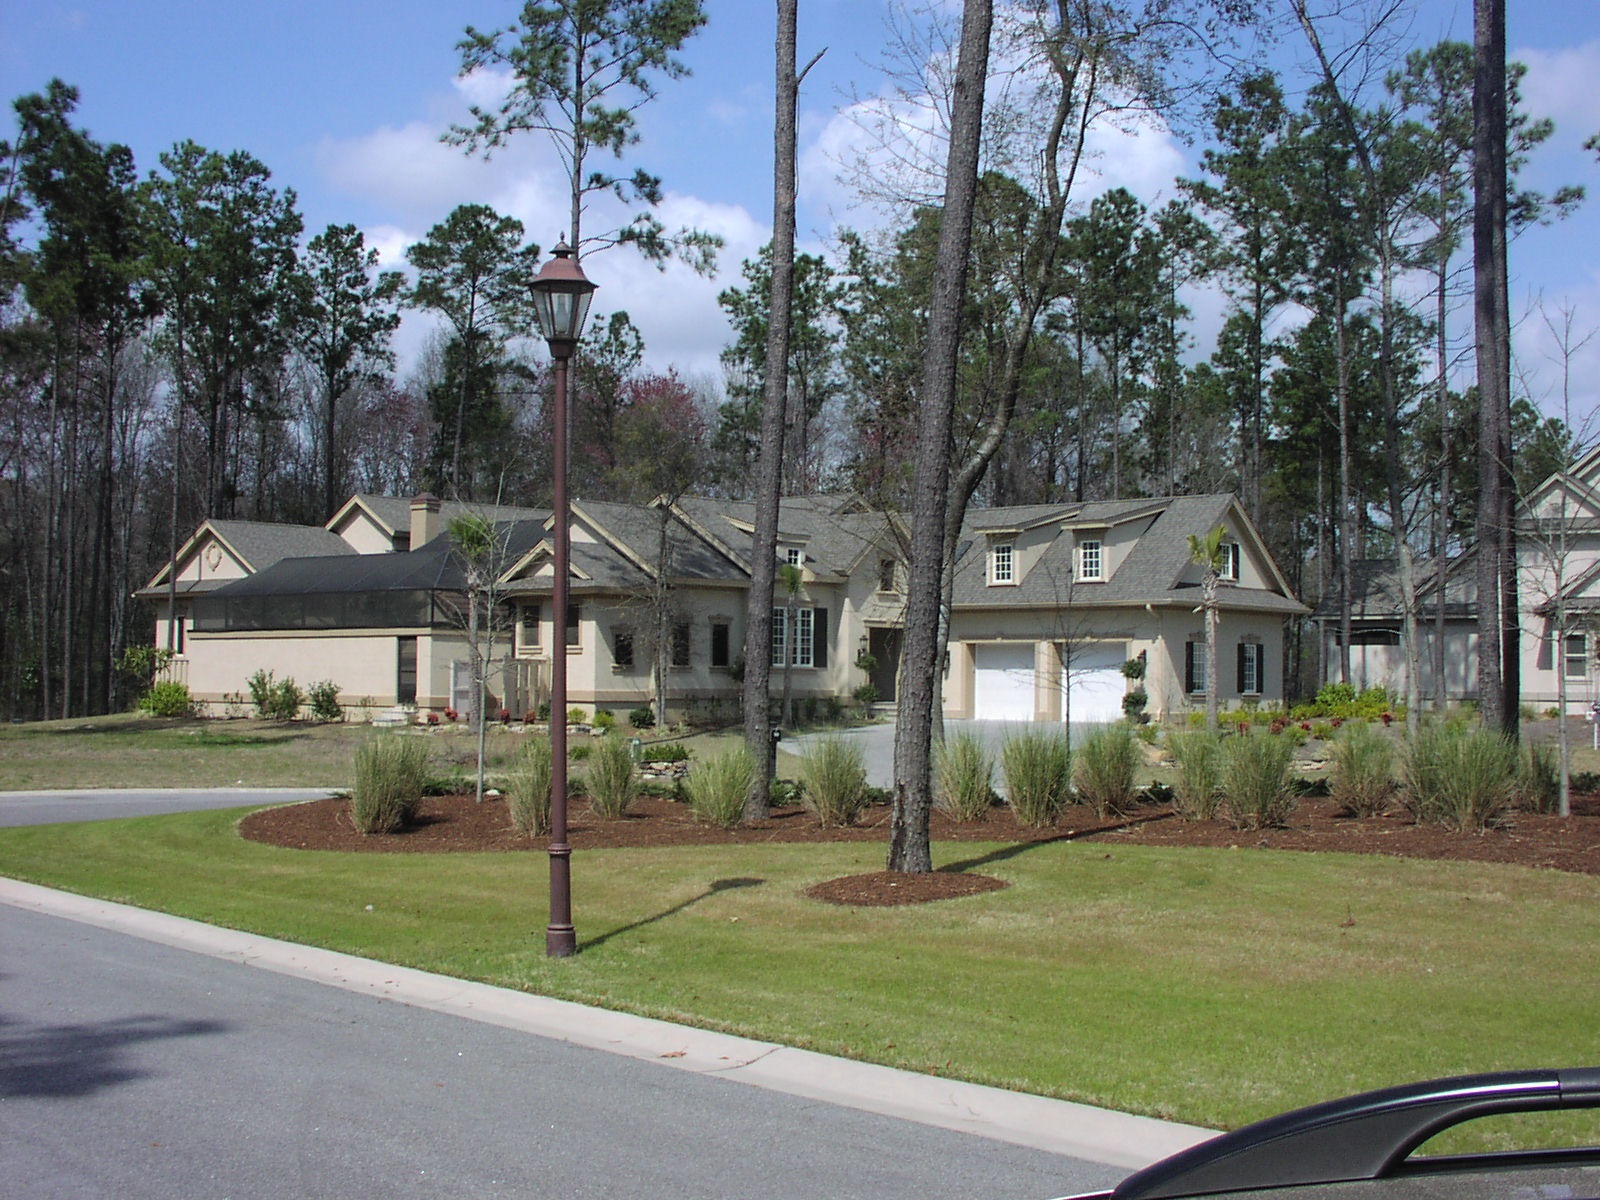 Custom Home Construction Serving the Lowcountry Area and Beyond!